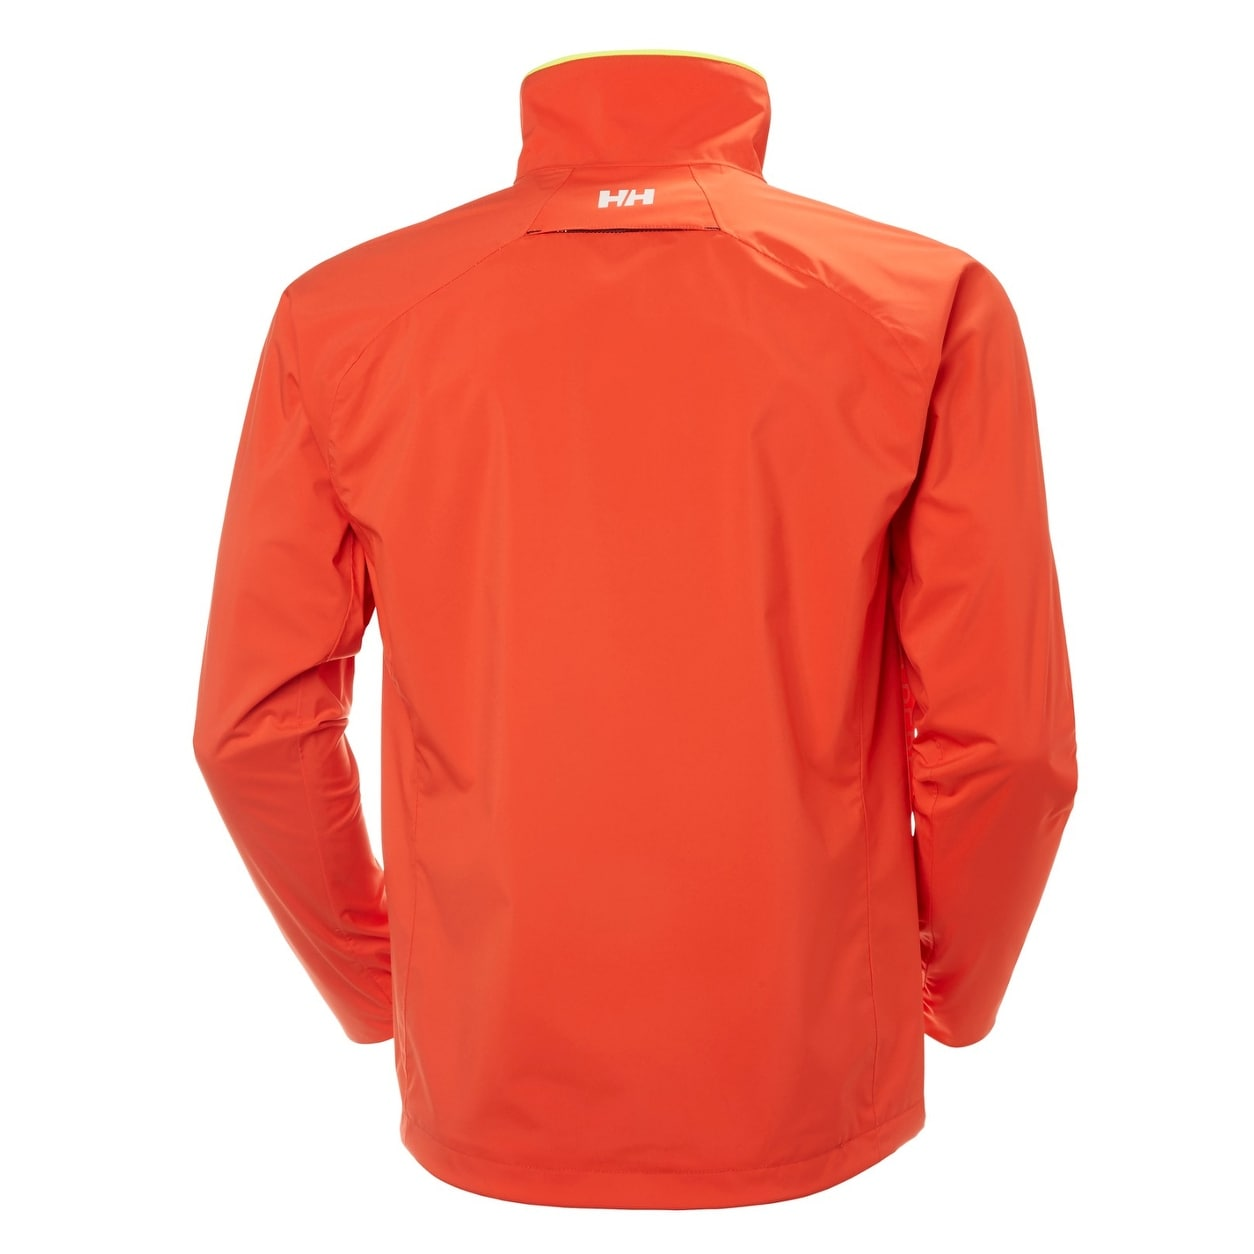 4faf6af3 Shop Helly Hansen Mens HP Shore Jacket - Grenadine, XL - Free Shipping  Today - Overstock - 21291177